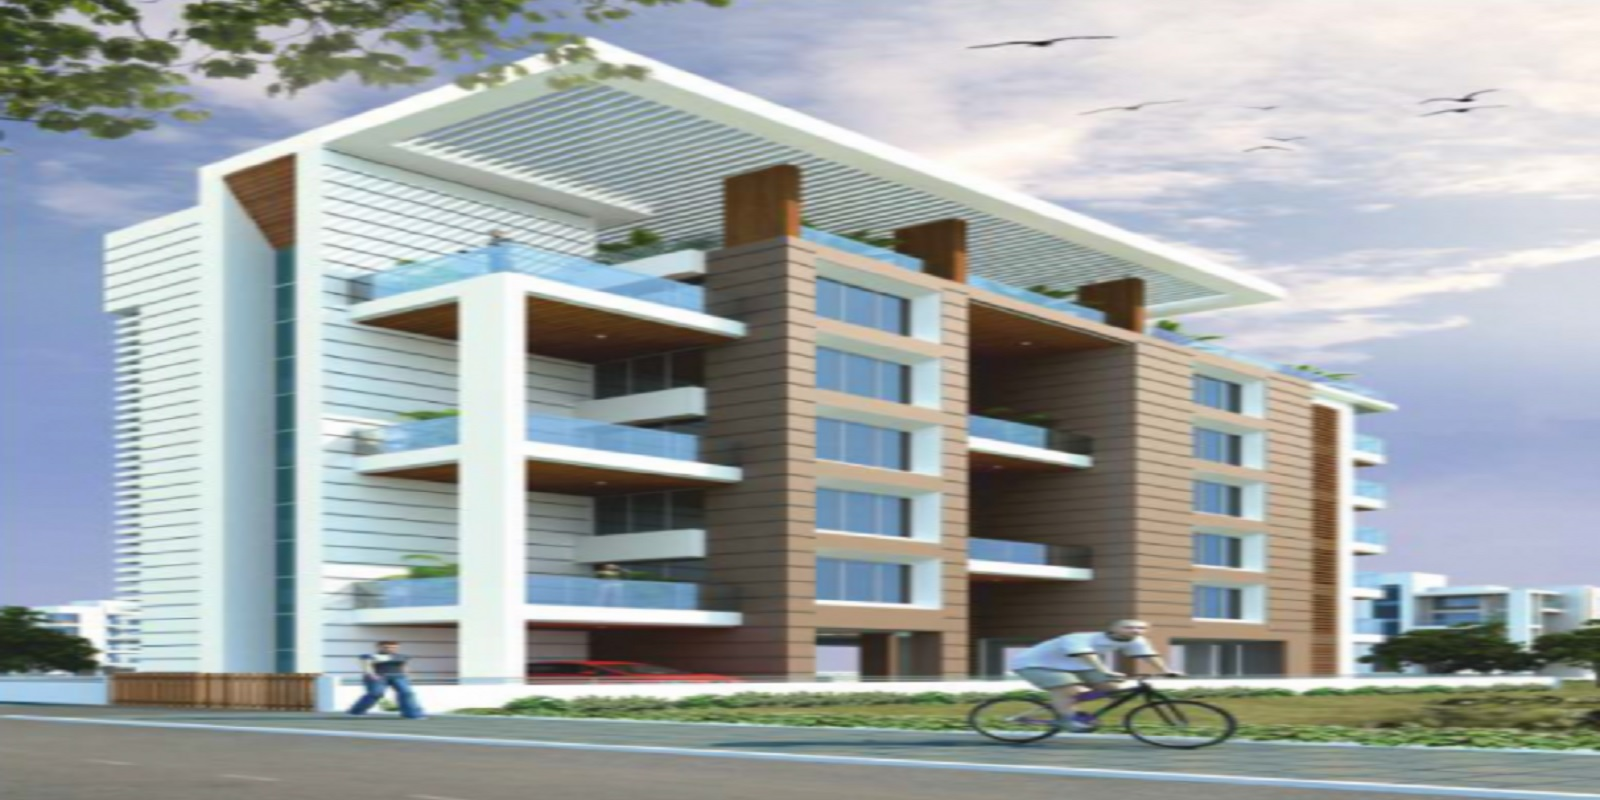 mittal sun solitaire project project large image1